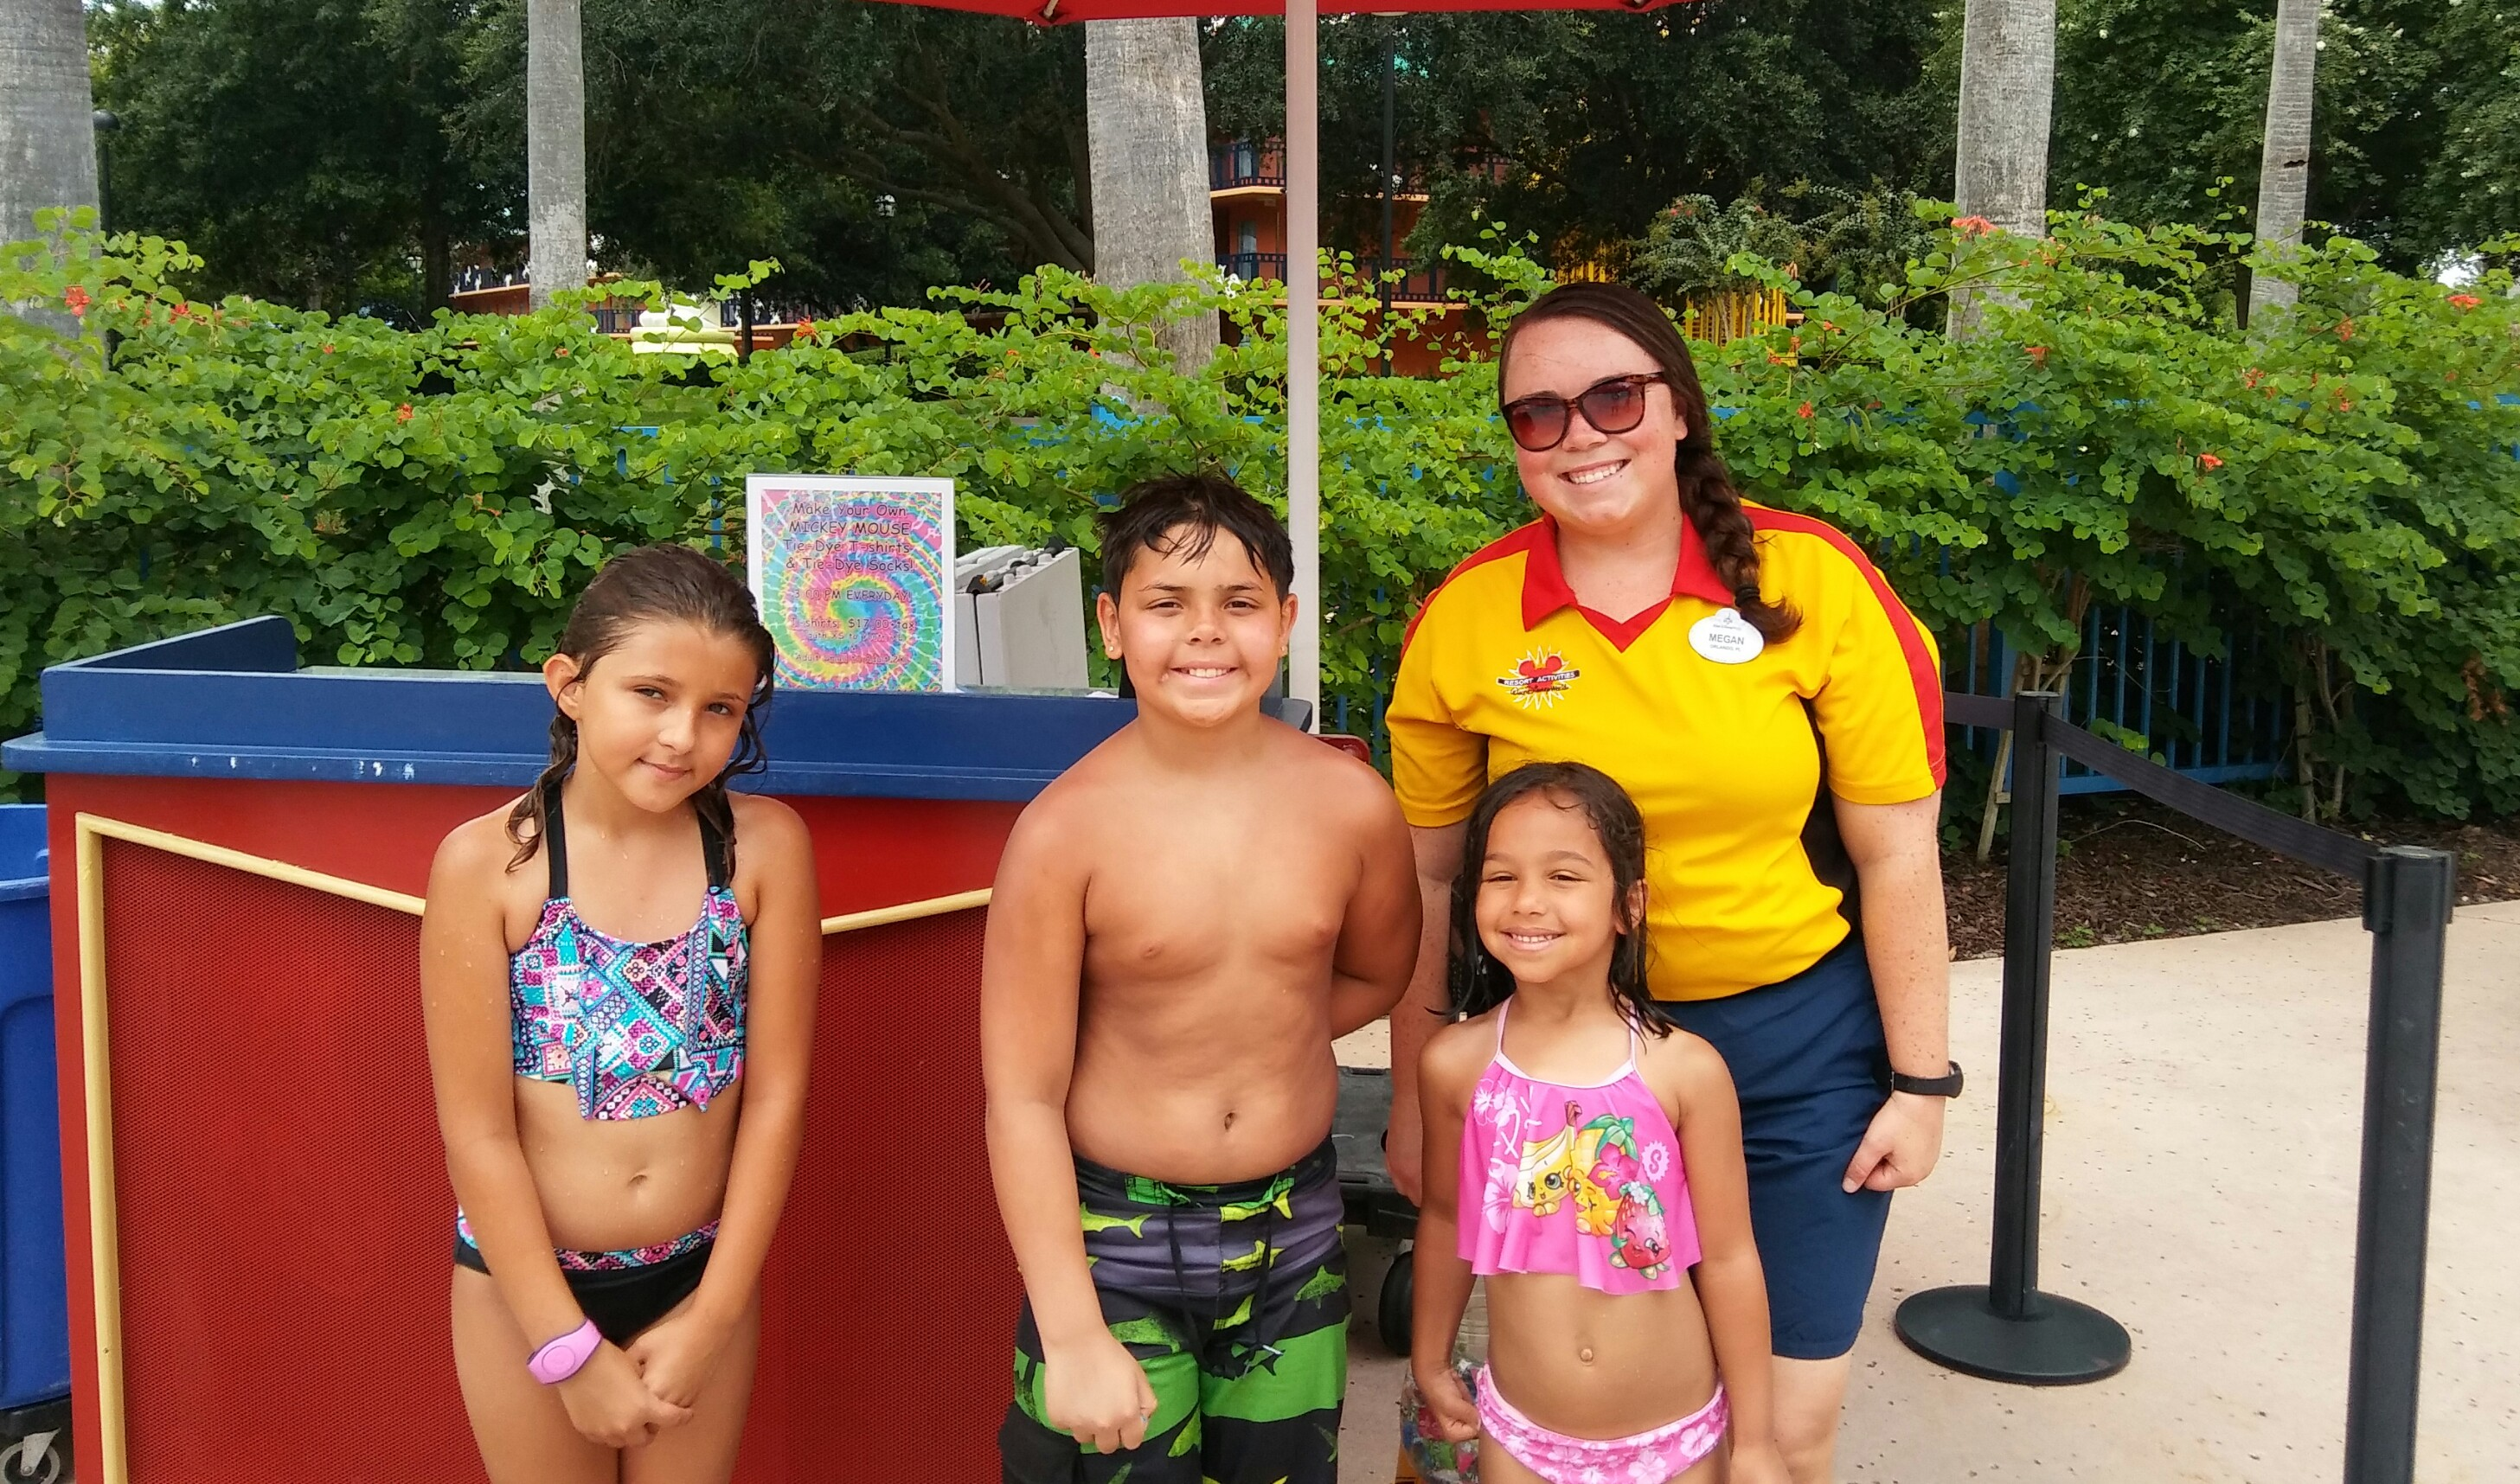 Did You Know Walt Disney World Resort Pools Host Fun Activities For the Whole Family?